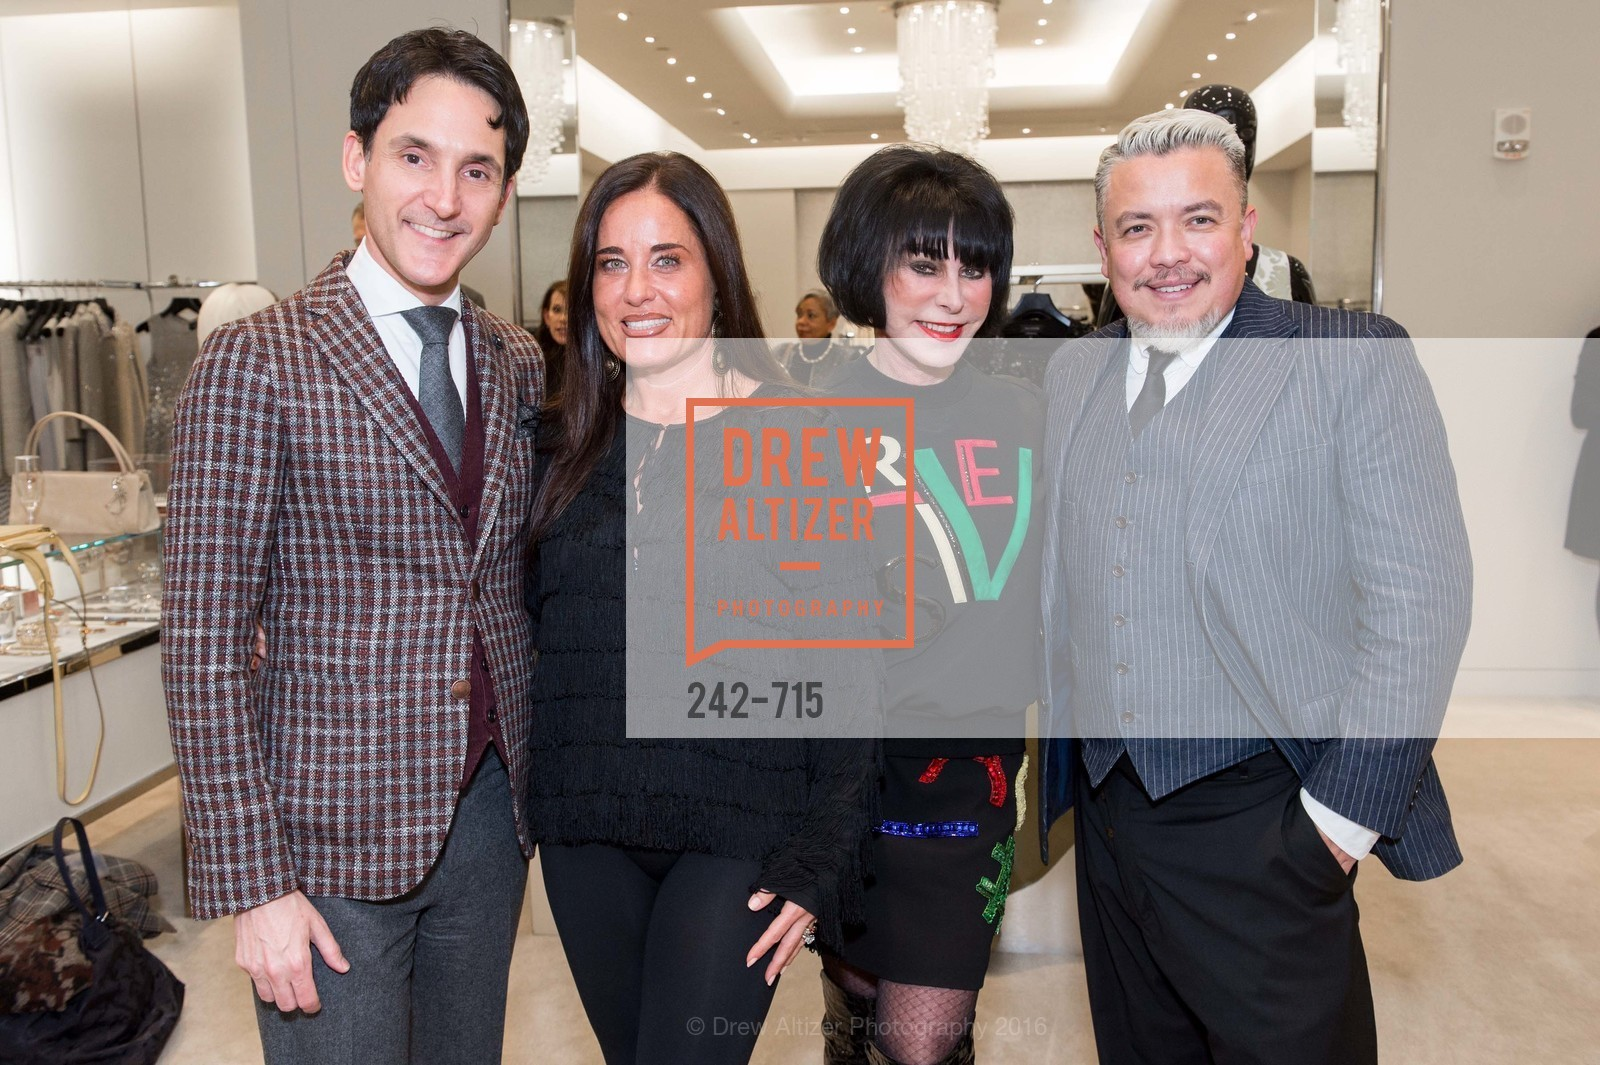 James Krohn, Natalia Urrutia, Marilyn Cabak, Victor Vargas, The National Domestic Violence Hotline 20th Anniversary Gala Launch Party, St. John Boutique. 767 Market St, January 20th, 2016,Drew Altizer, Drew Altizer Photography, full-service agency, private events, San Francisco photographer, photographer california